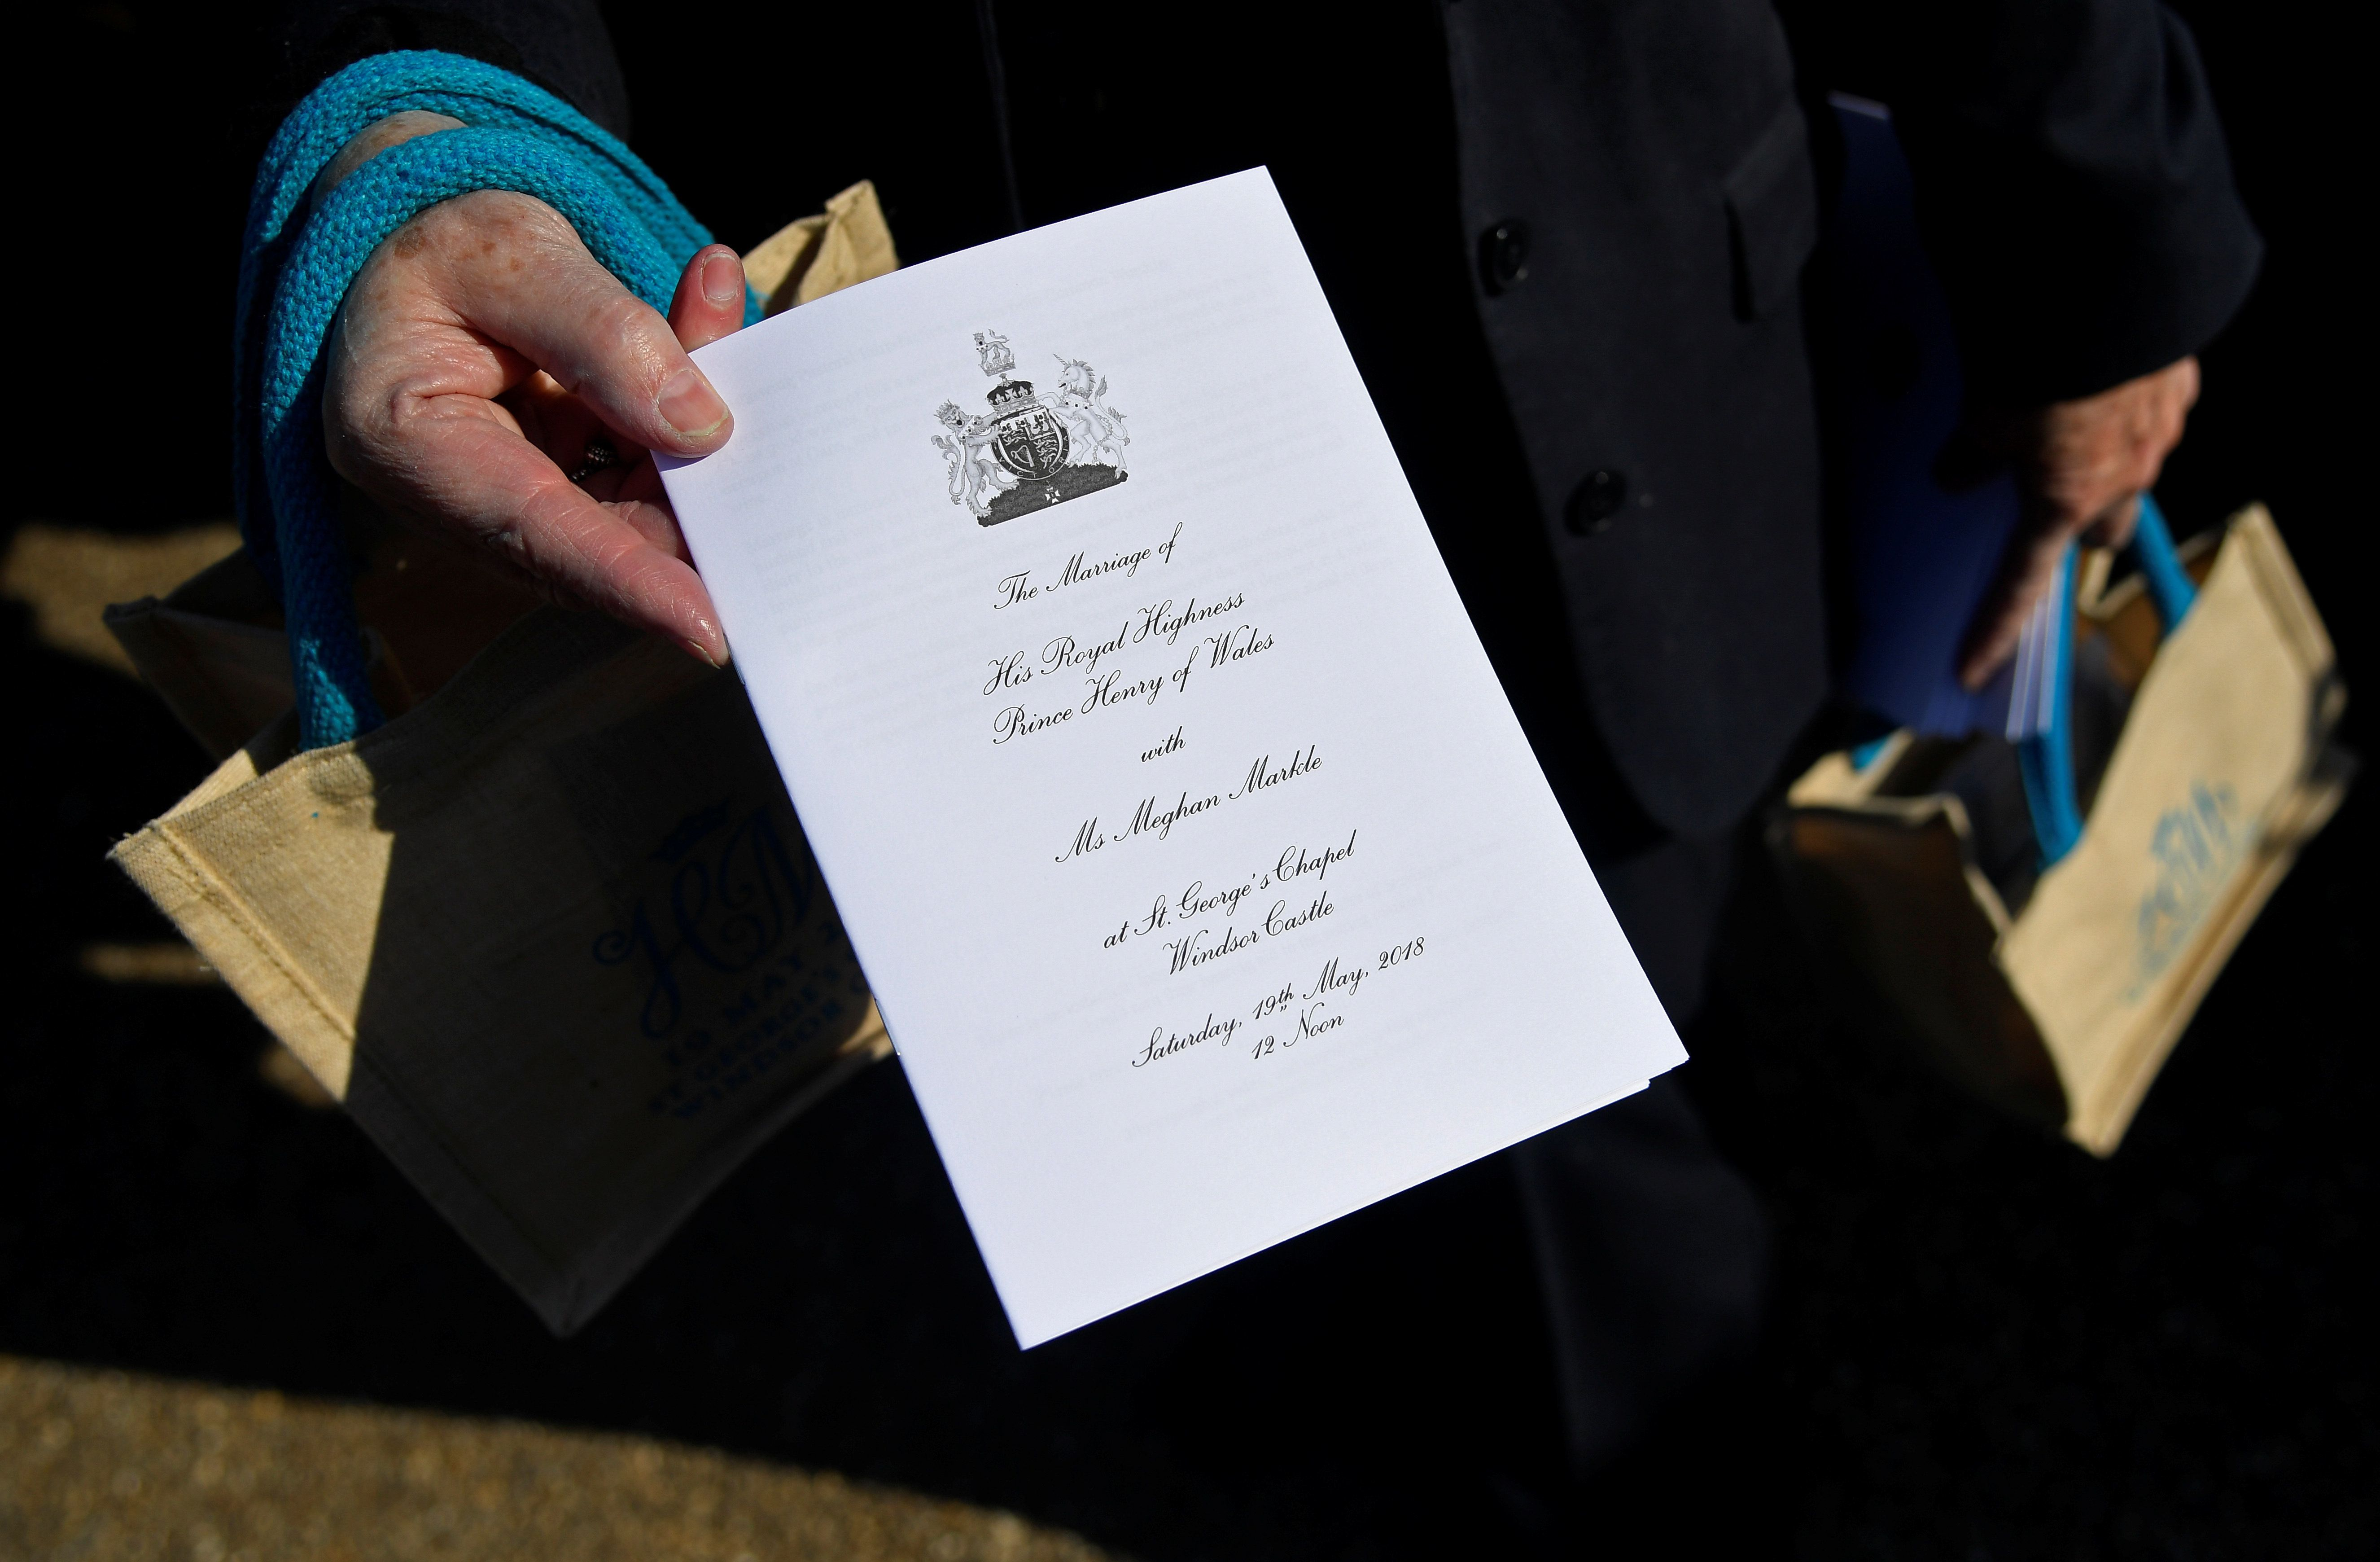 A member of staff holds a service sheet and goodie bags ahead of the wedding of Britain's Prince Harry to Meghan Markle.